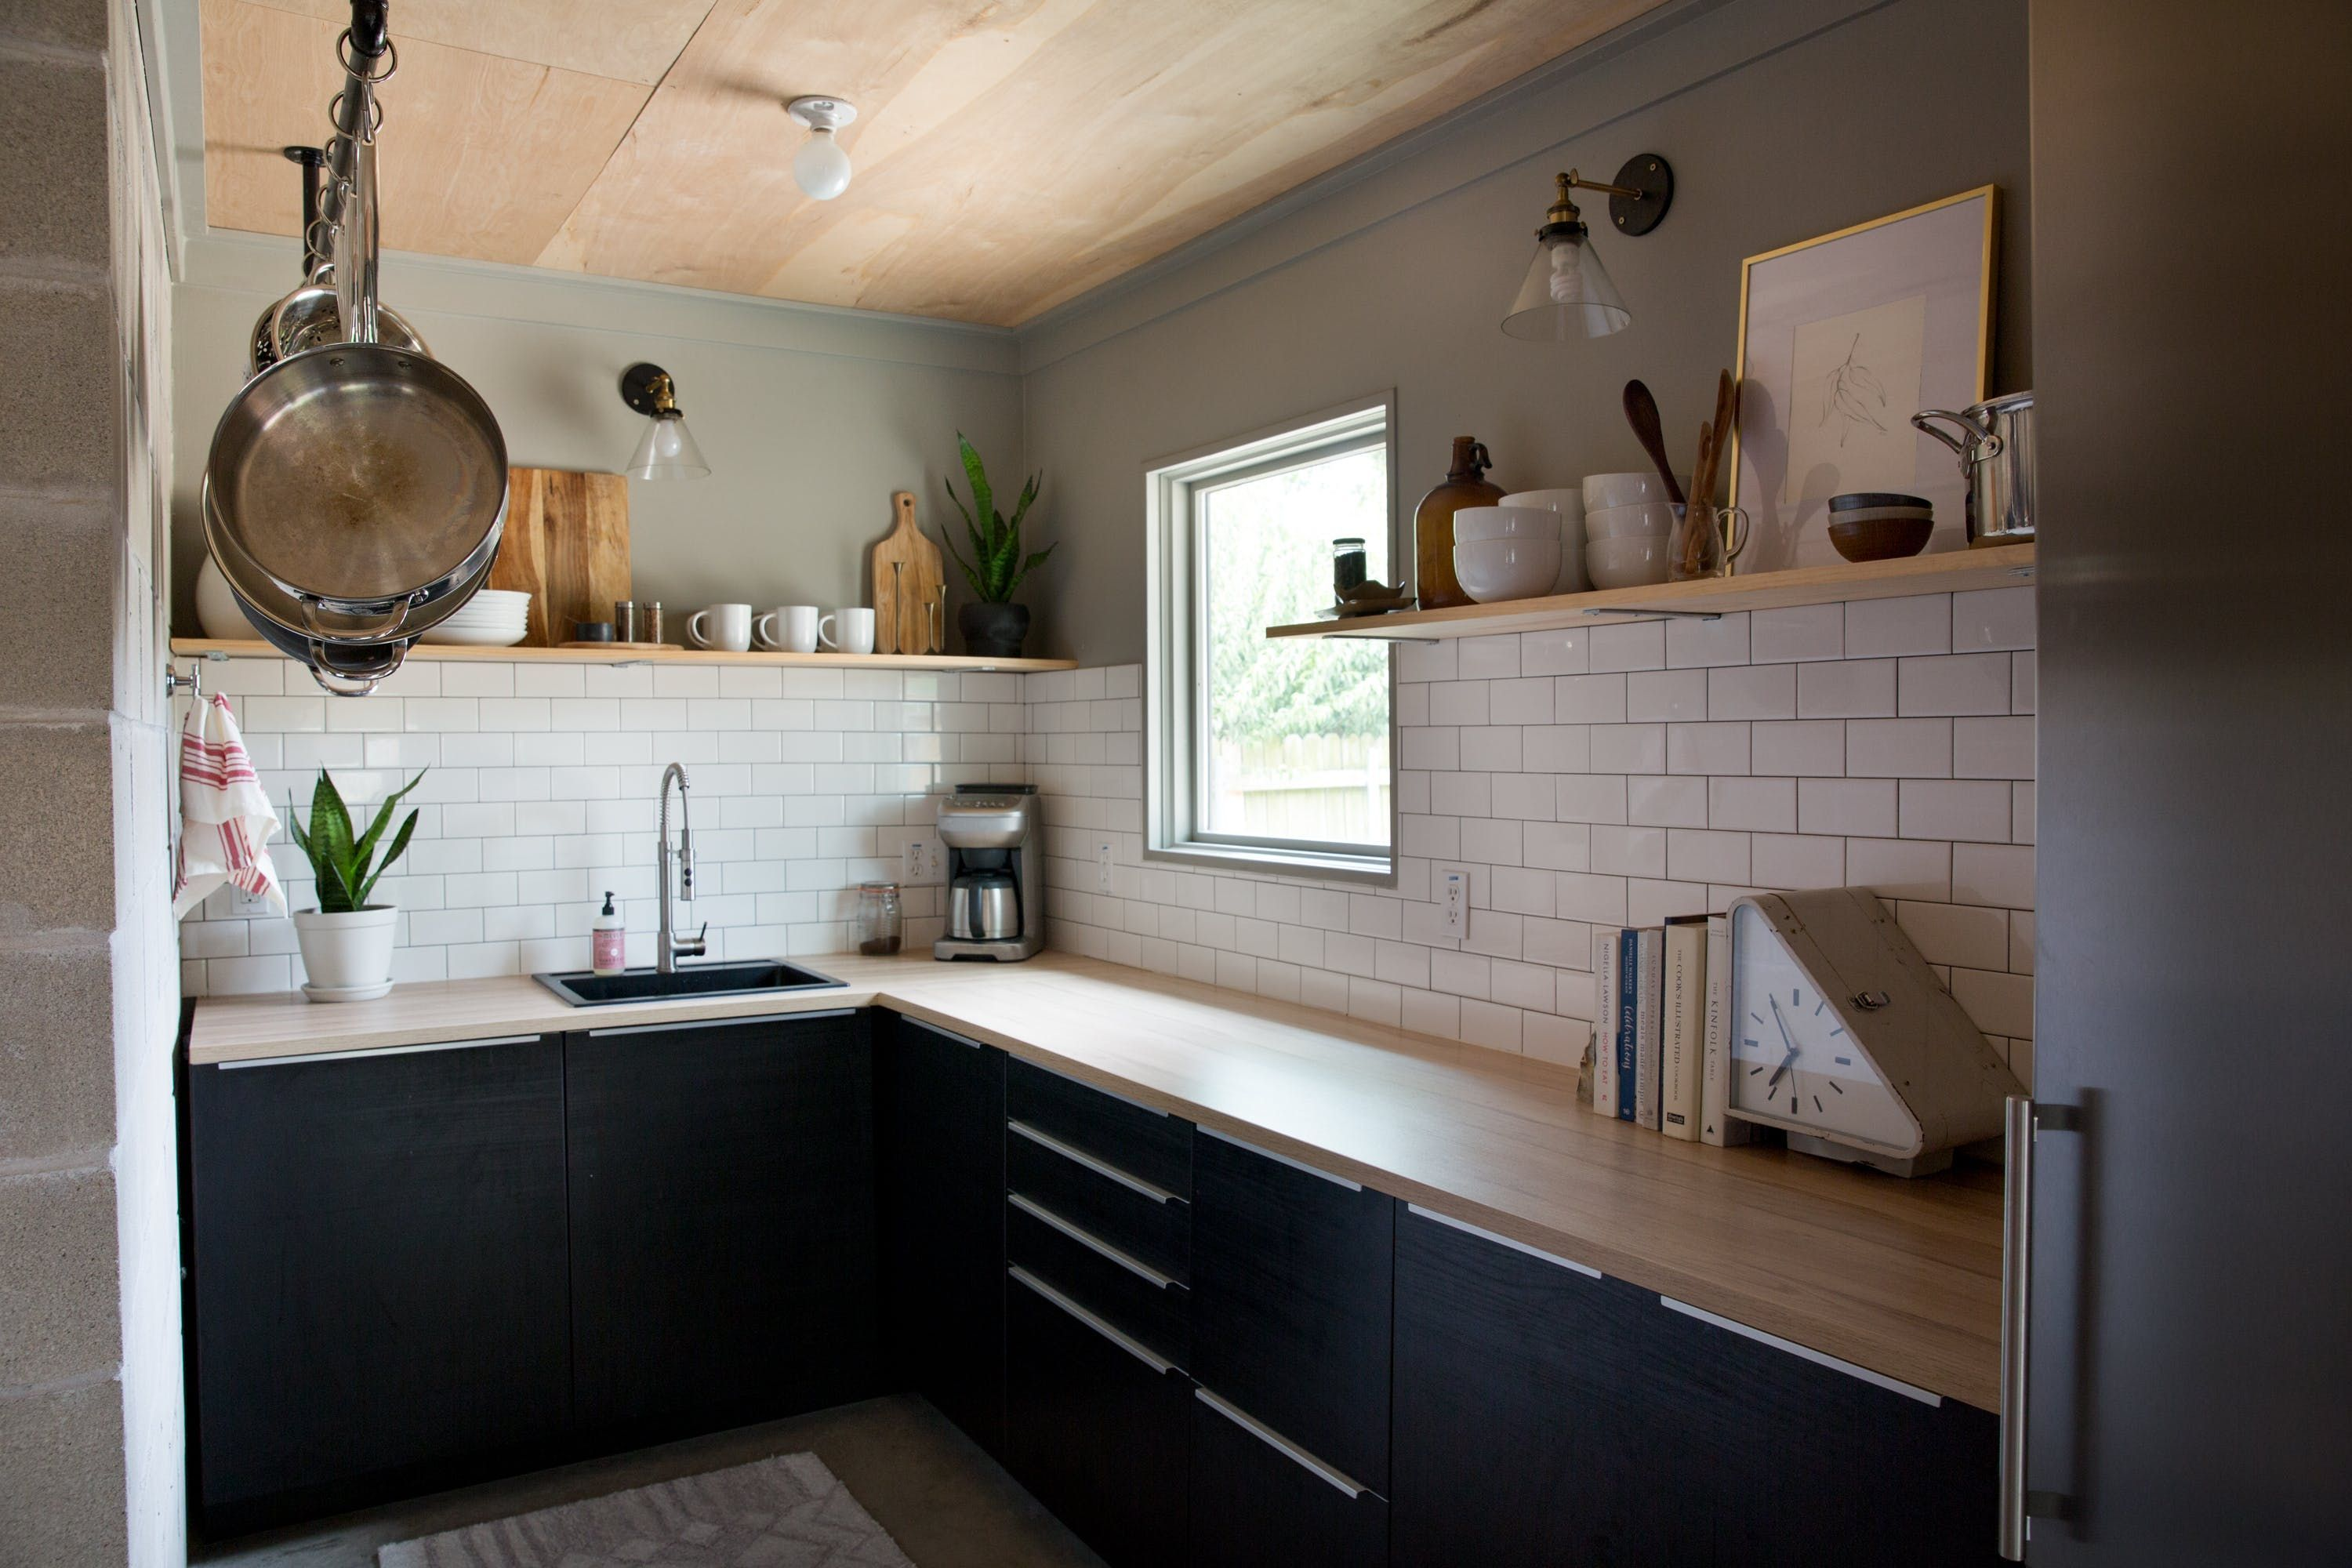 A Modest & Modern Tiny Home in a Garage in 2019 Kitchens